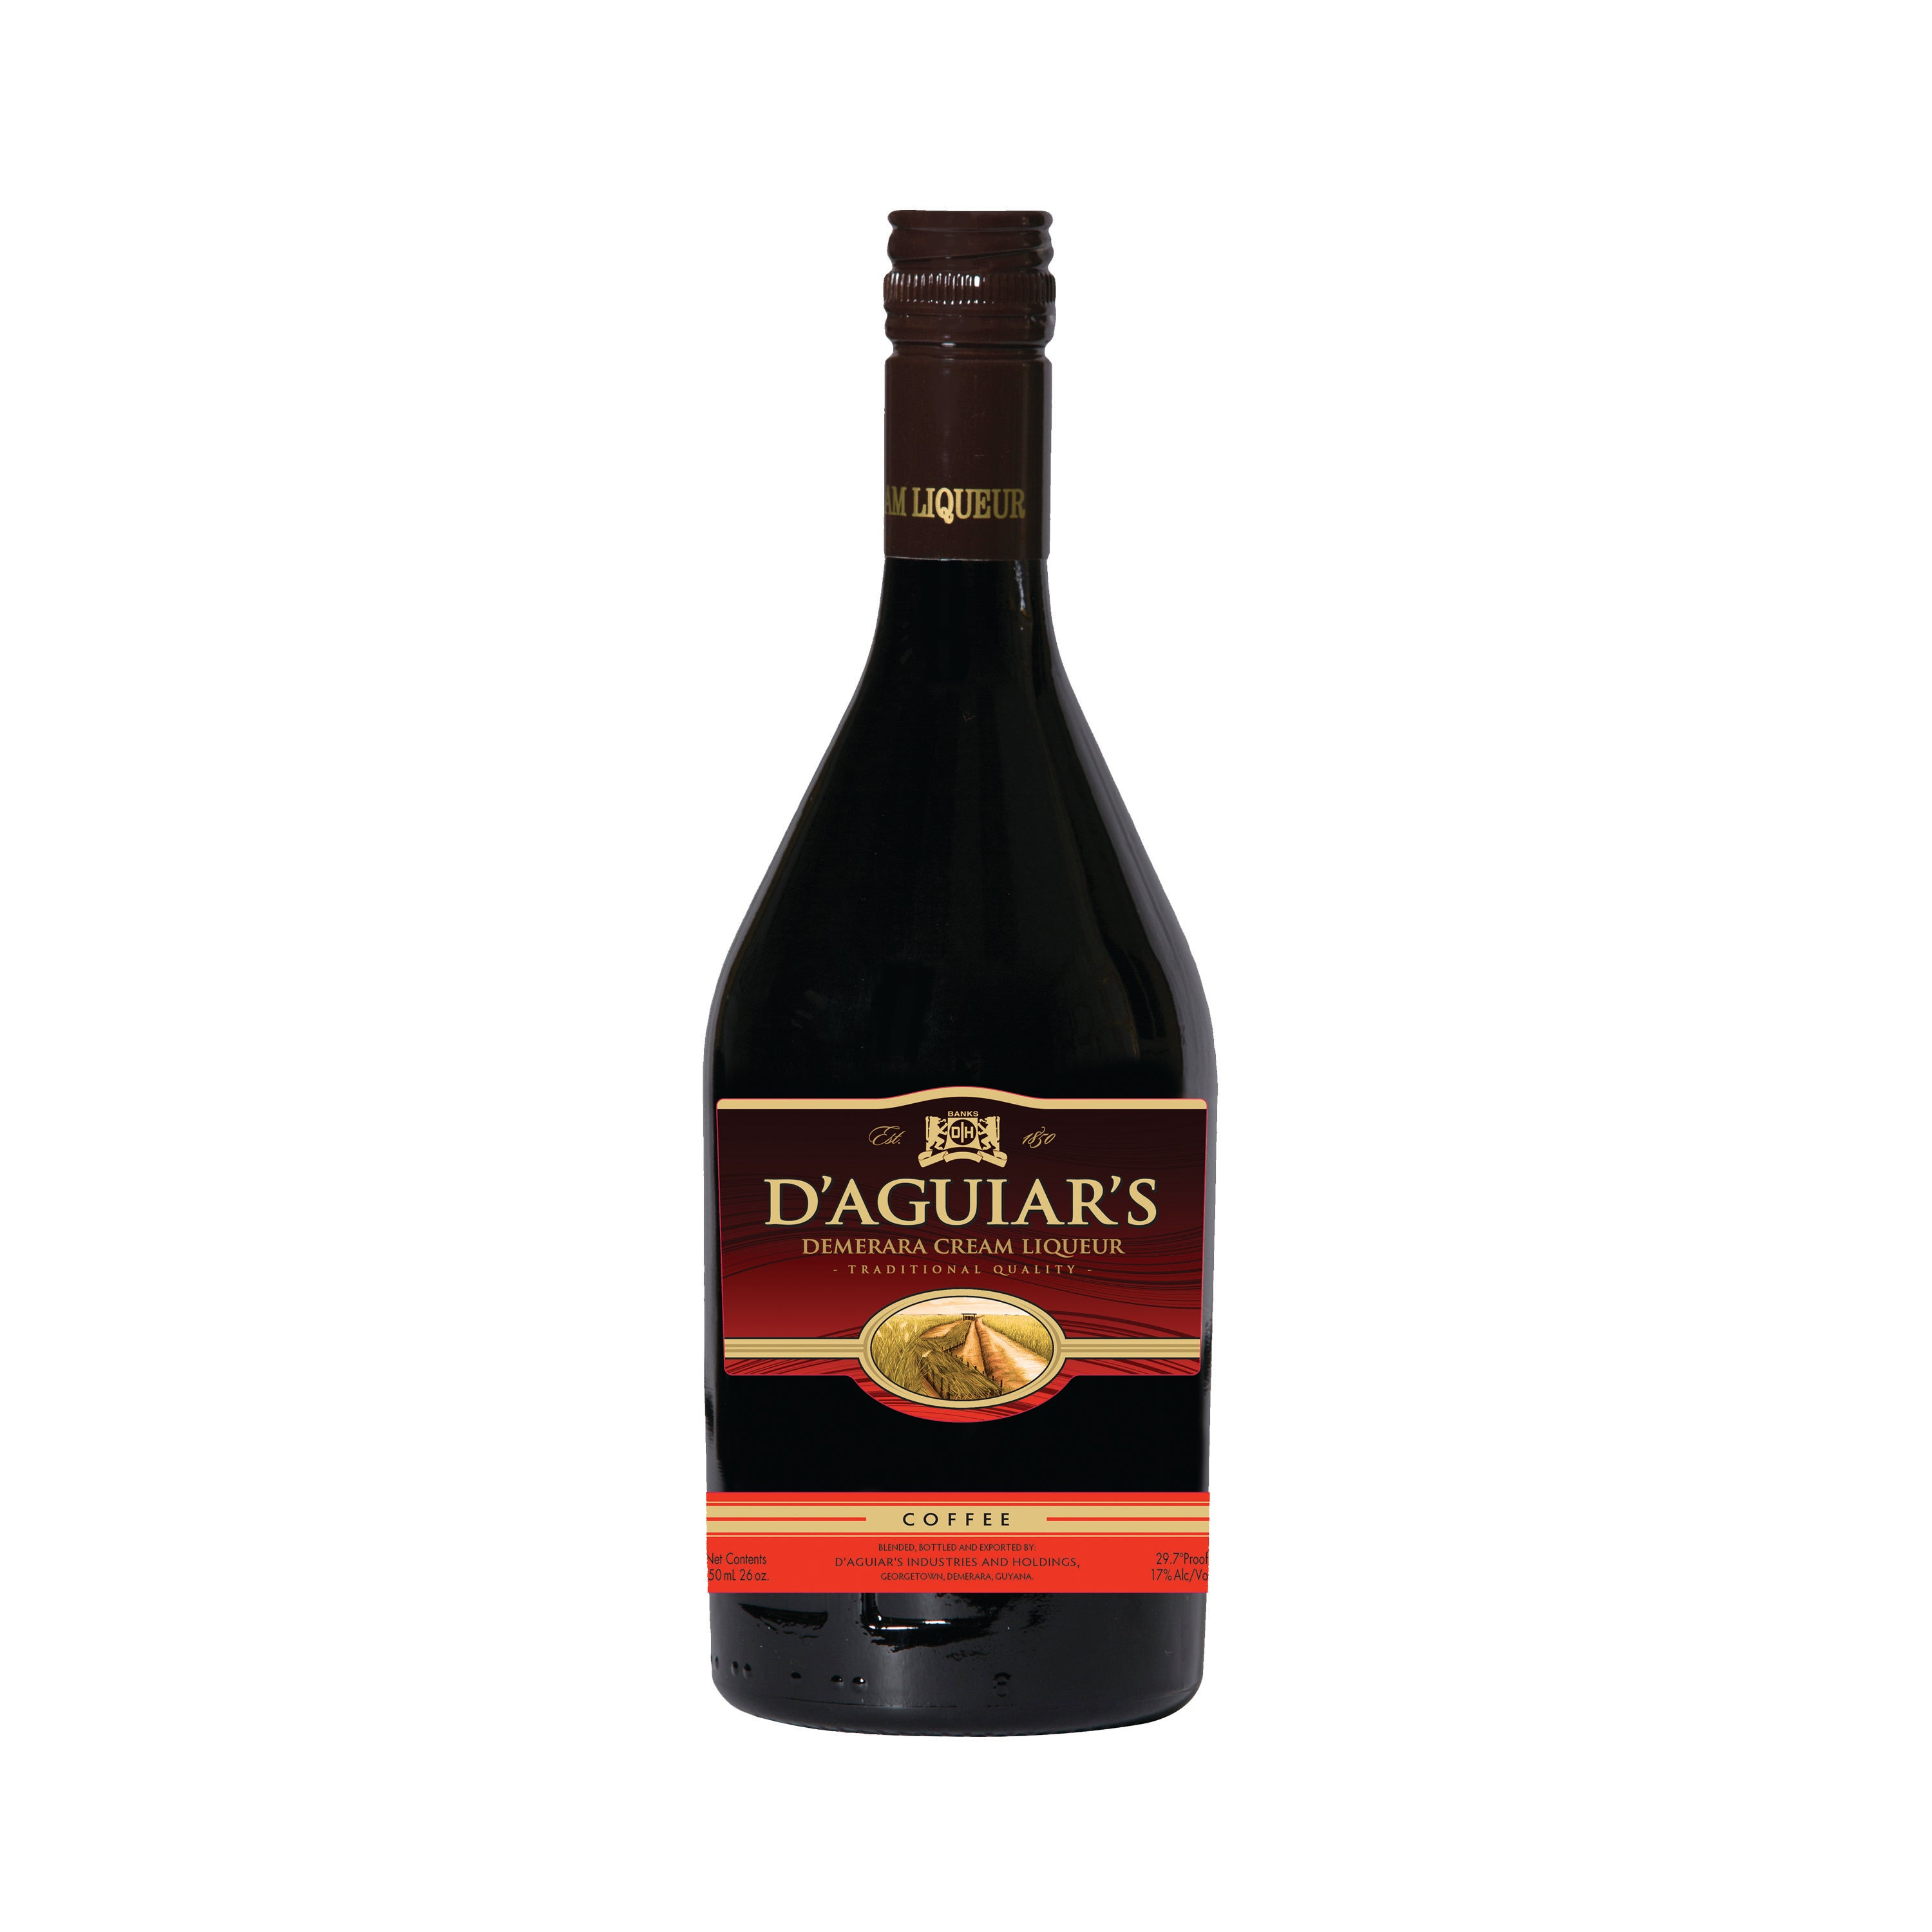 D'Aguiars Coffee 750ml